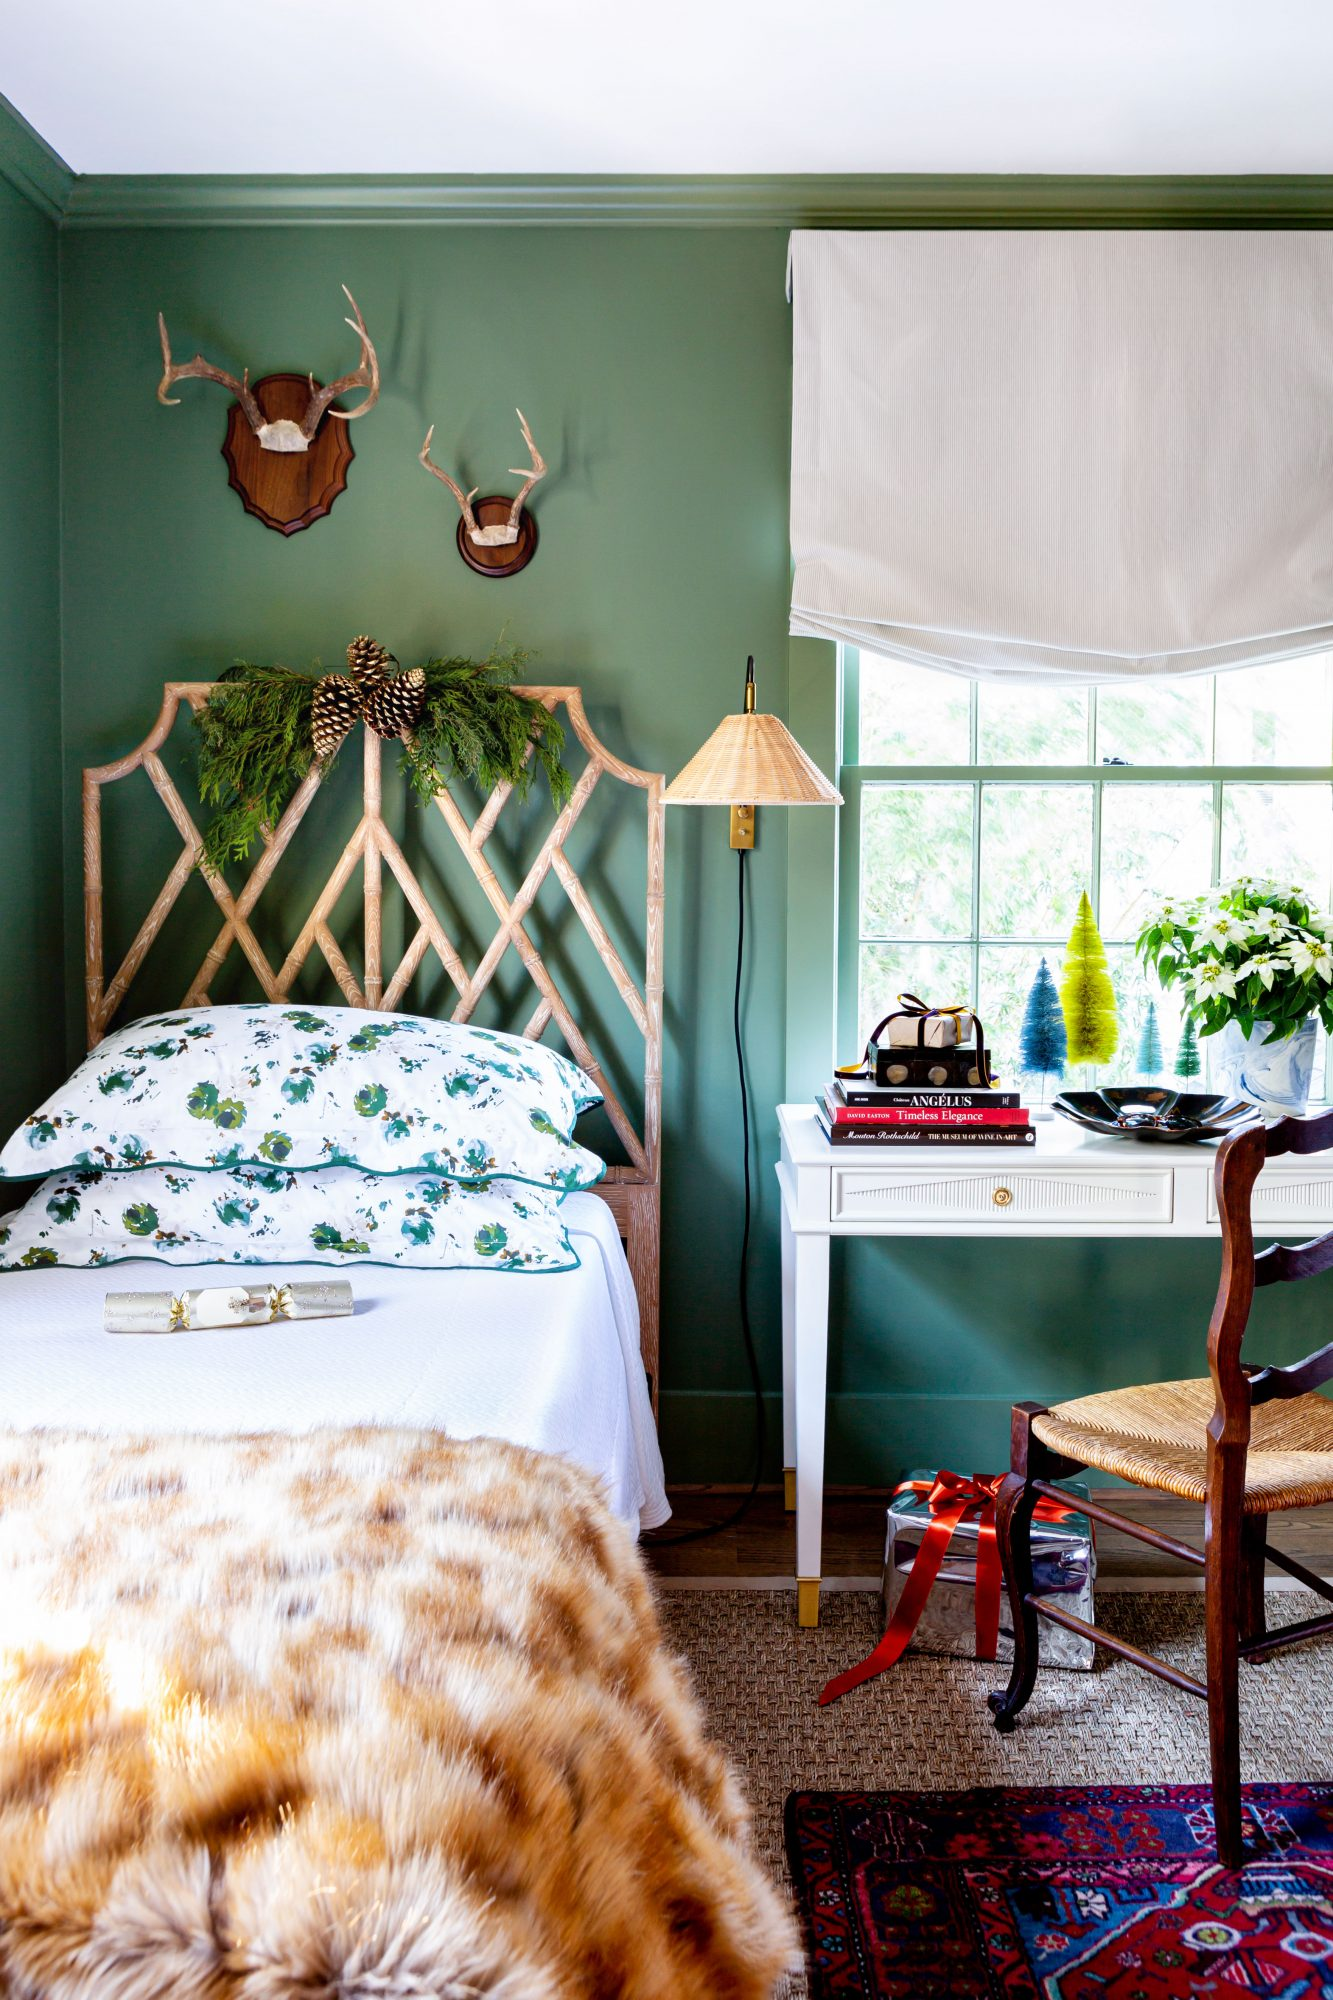 Green guest room with twin beds decorated for Christmas with greenery and bottle brush trees.